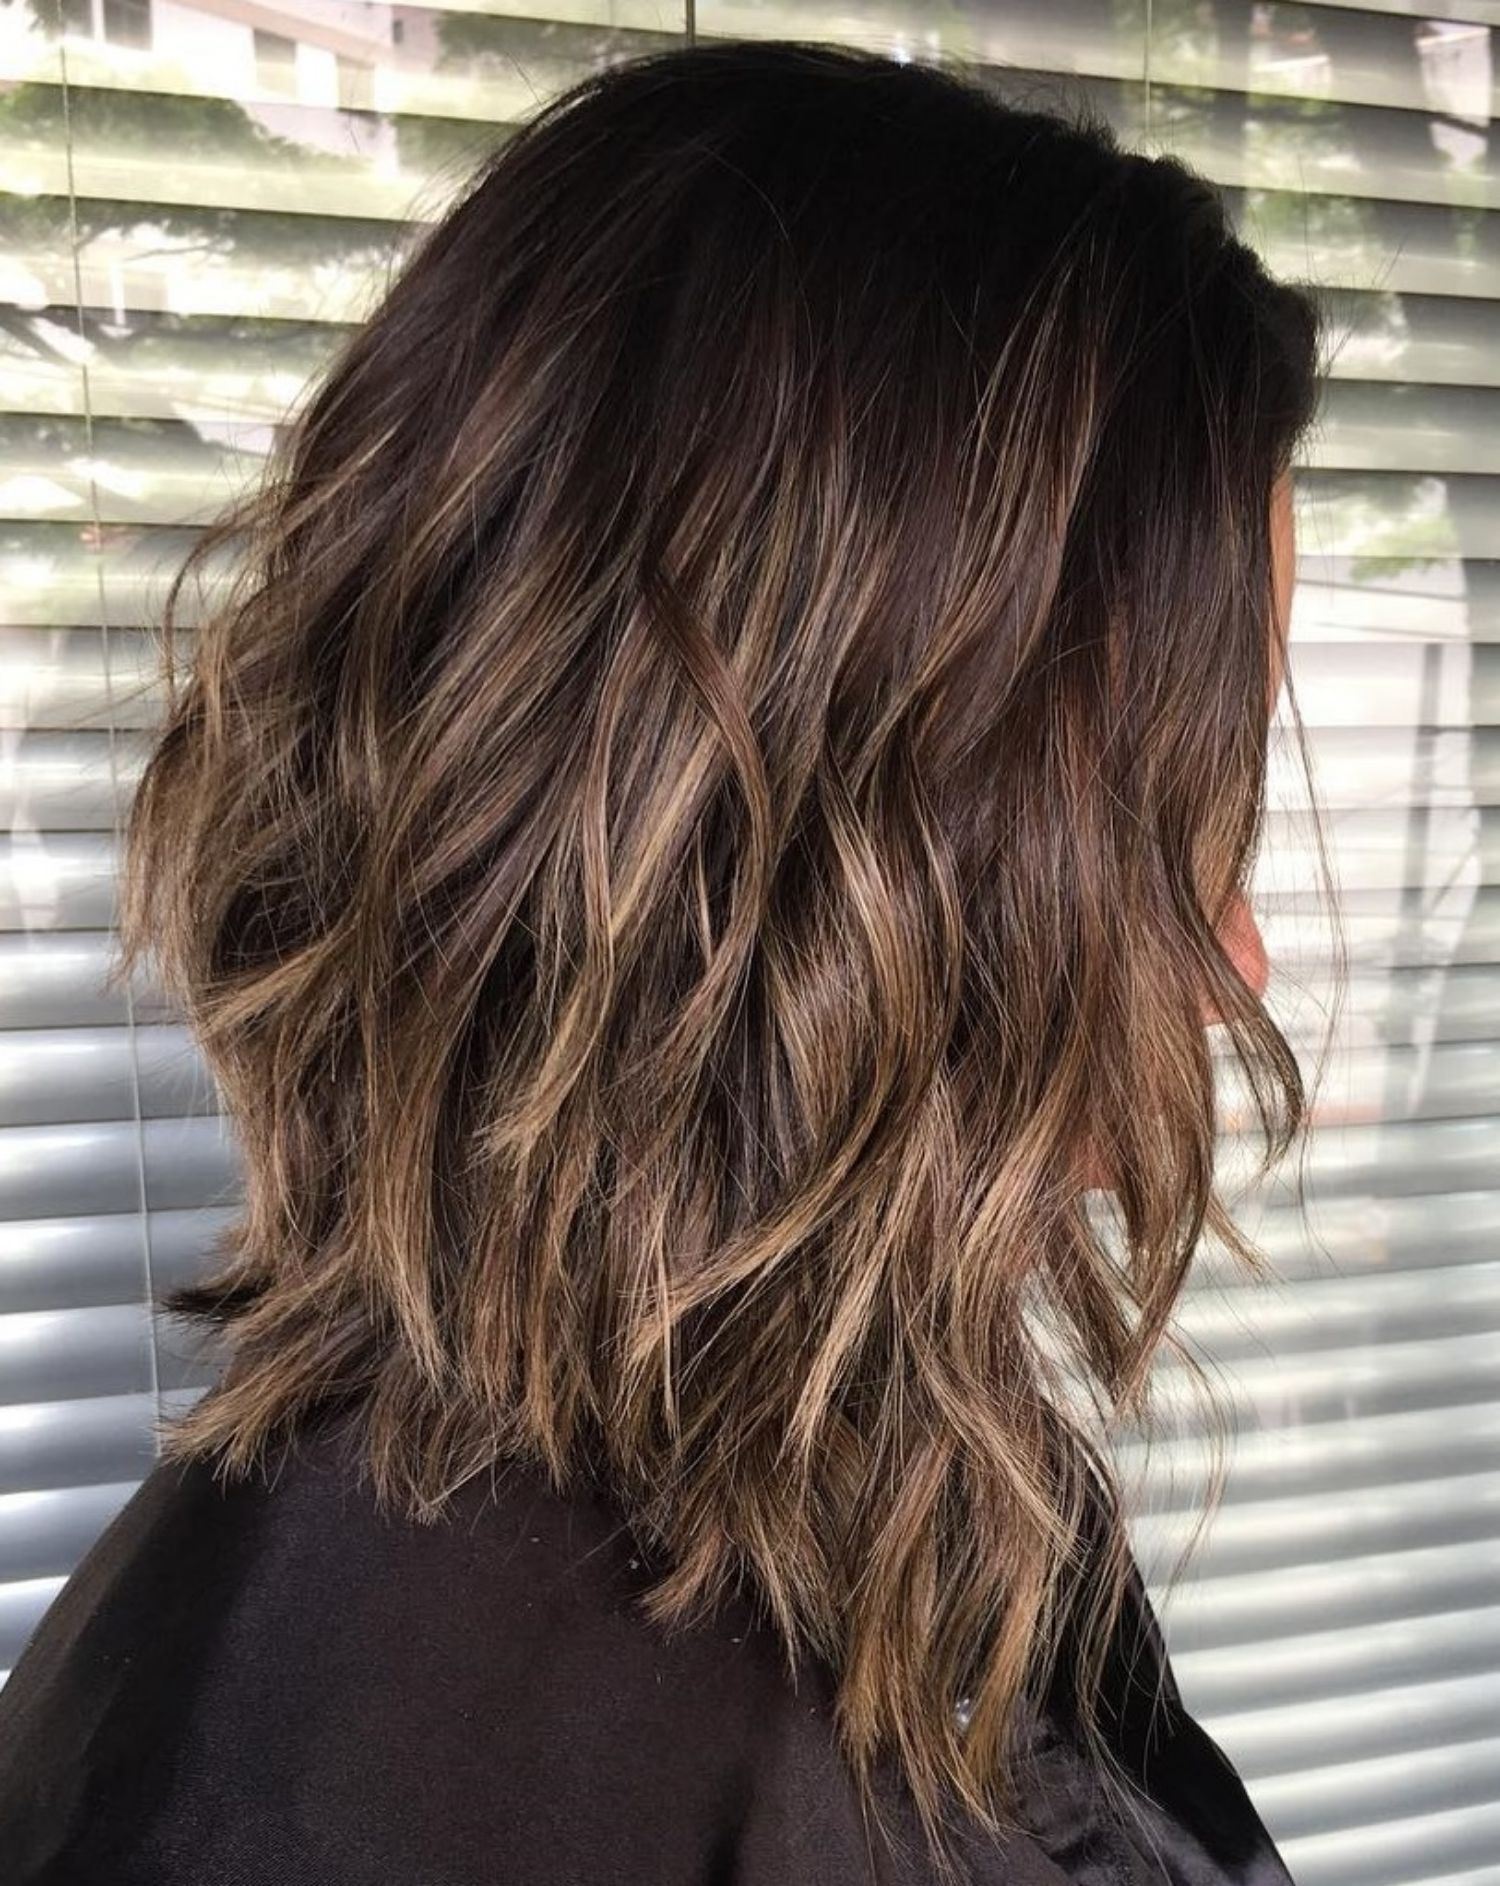 70 Brightest Medium Layered Haircuts To Light You Up In 2019 | Hair